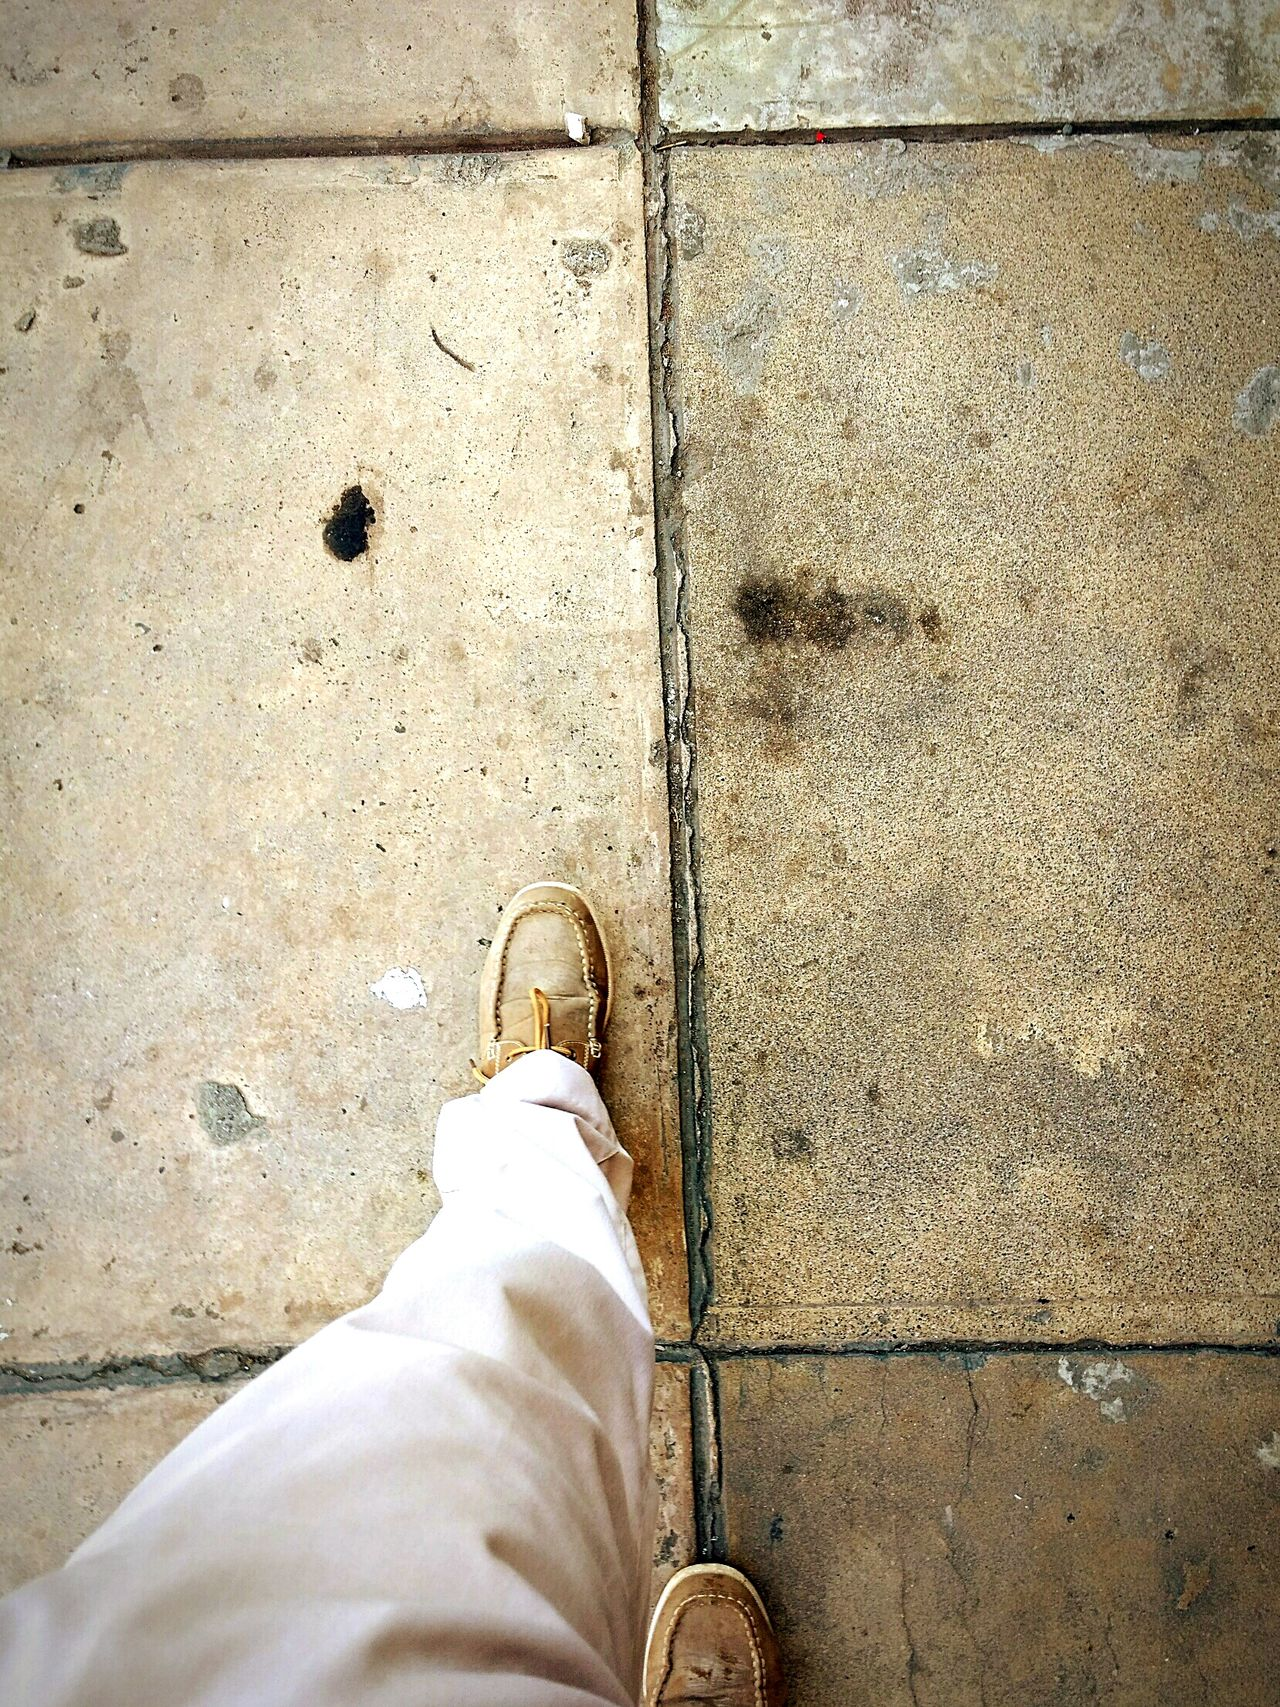 Old concrete sidewalk. Human Body Part Human Leg Shoe Standing Personal Perspective One Person Outdoors Low Section Street Street Photography Sidewalk Concrete Concrete Jungle Concrete Floor EyeEmBestPics EyeEm Gallery Adapted To The City